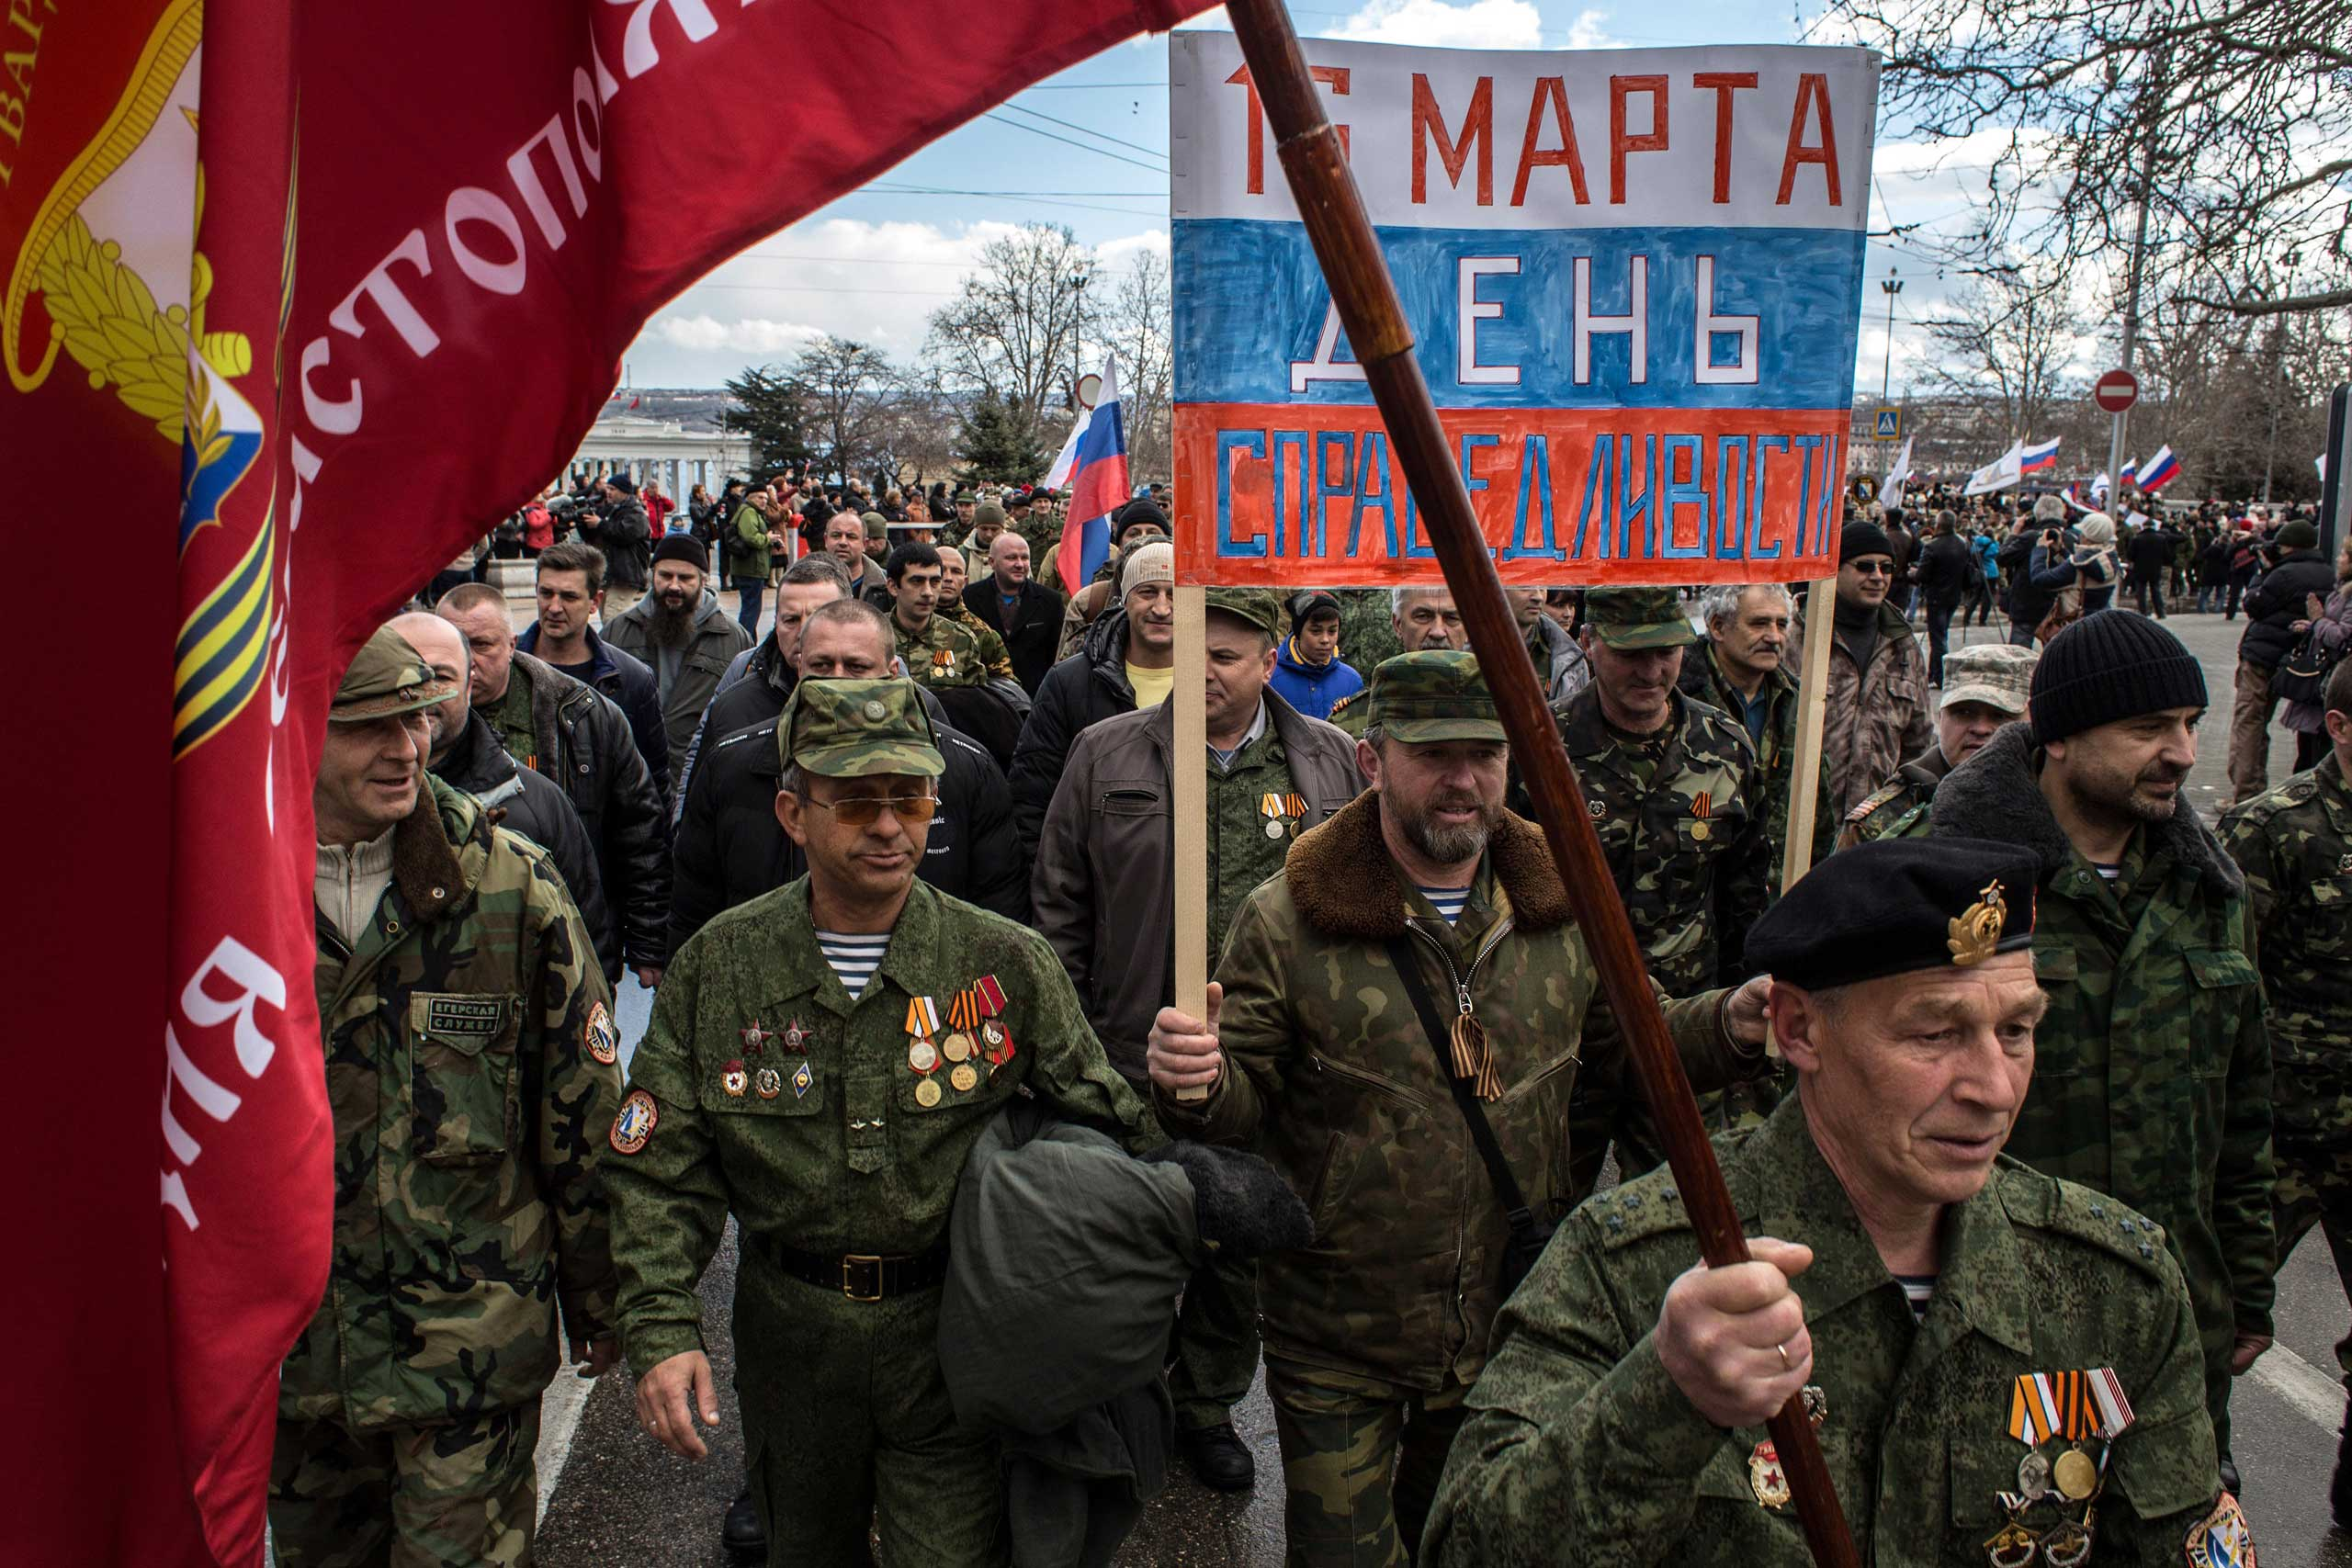 Anniversary celebrations in Sevastopol, March 18, 2015.